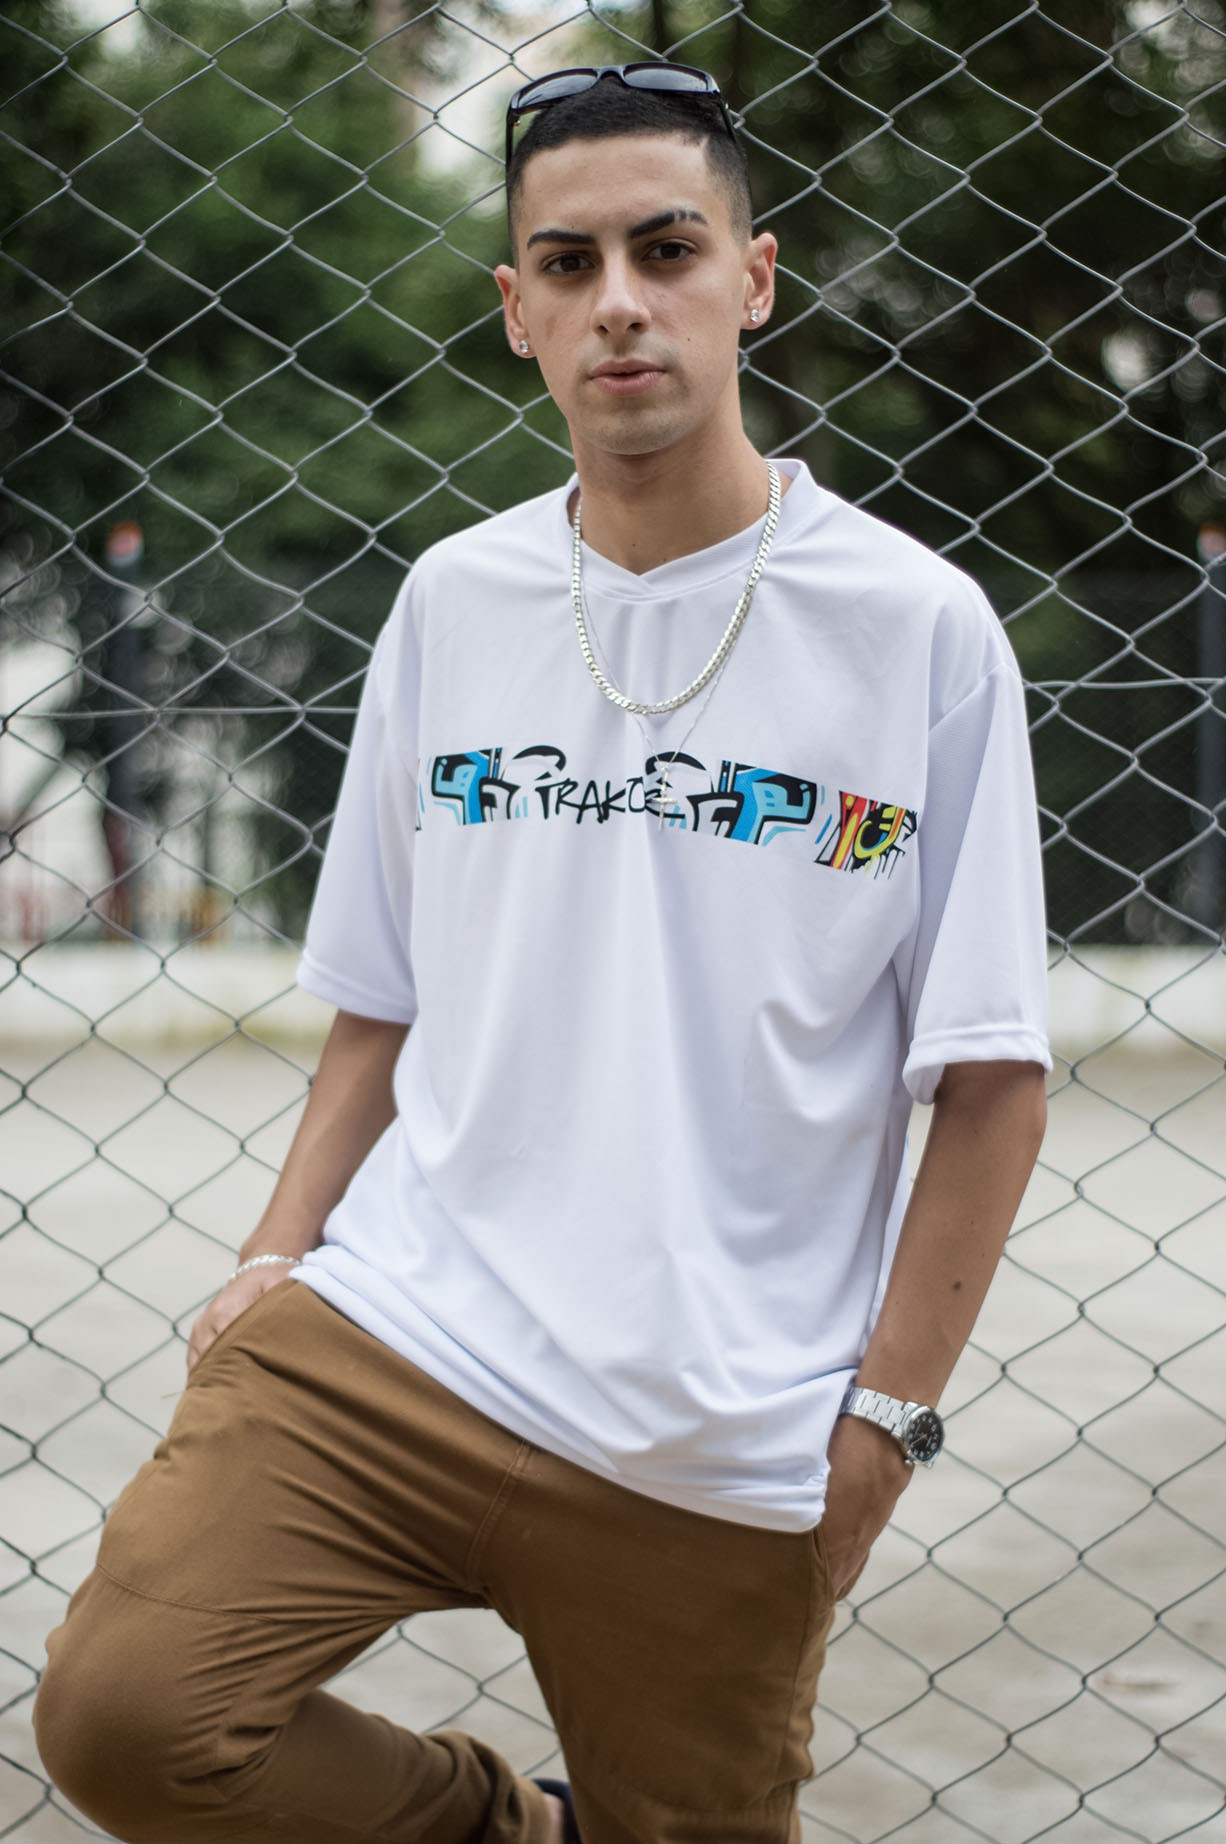 CAMISETA GRAFFITI T-SHIRT TRAKTOR